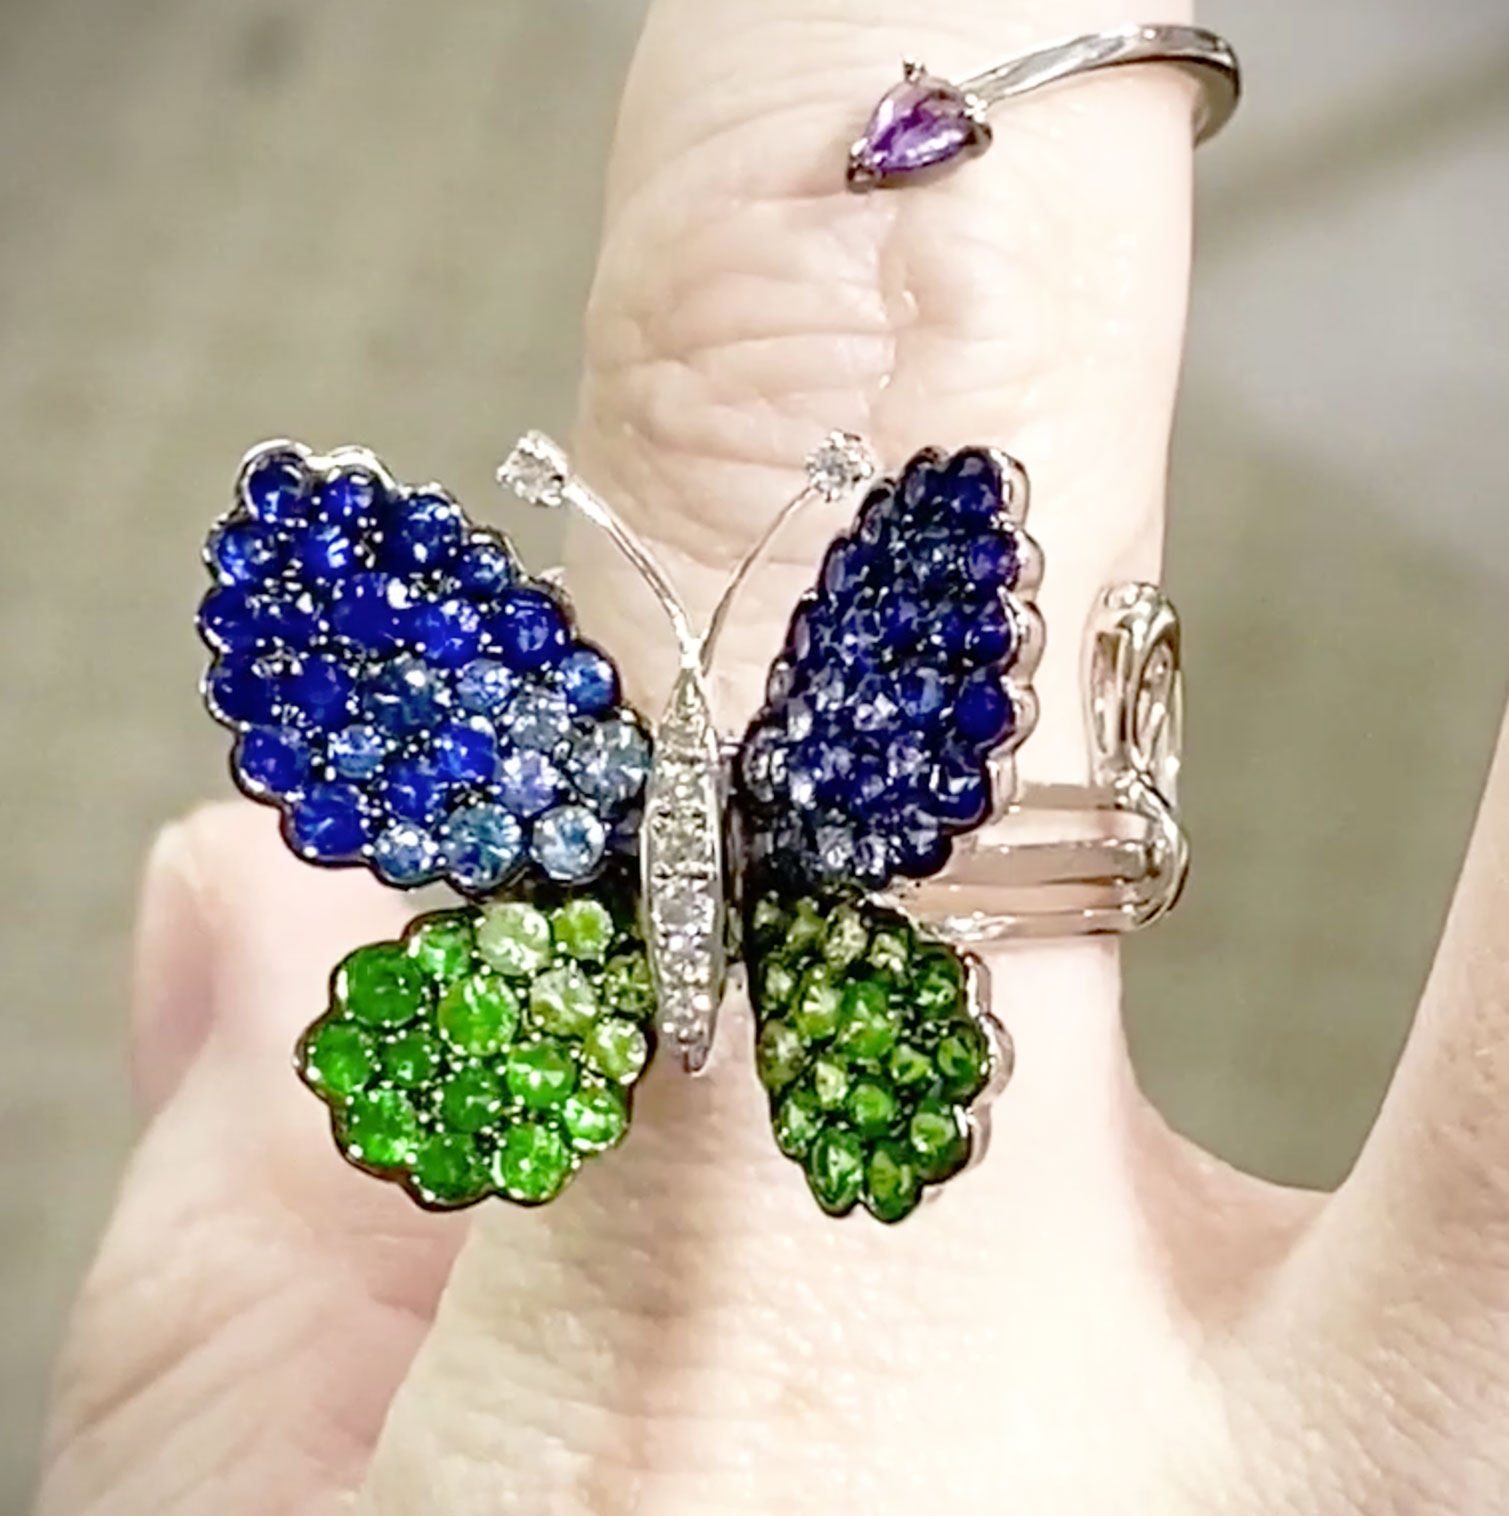 Articulated butterfly ring in 18k white gold set with Tsavorite Garnets, Blue Sapphires and Diamonds… as fingers bend, the wings close and open!